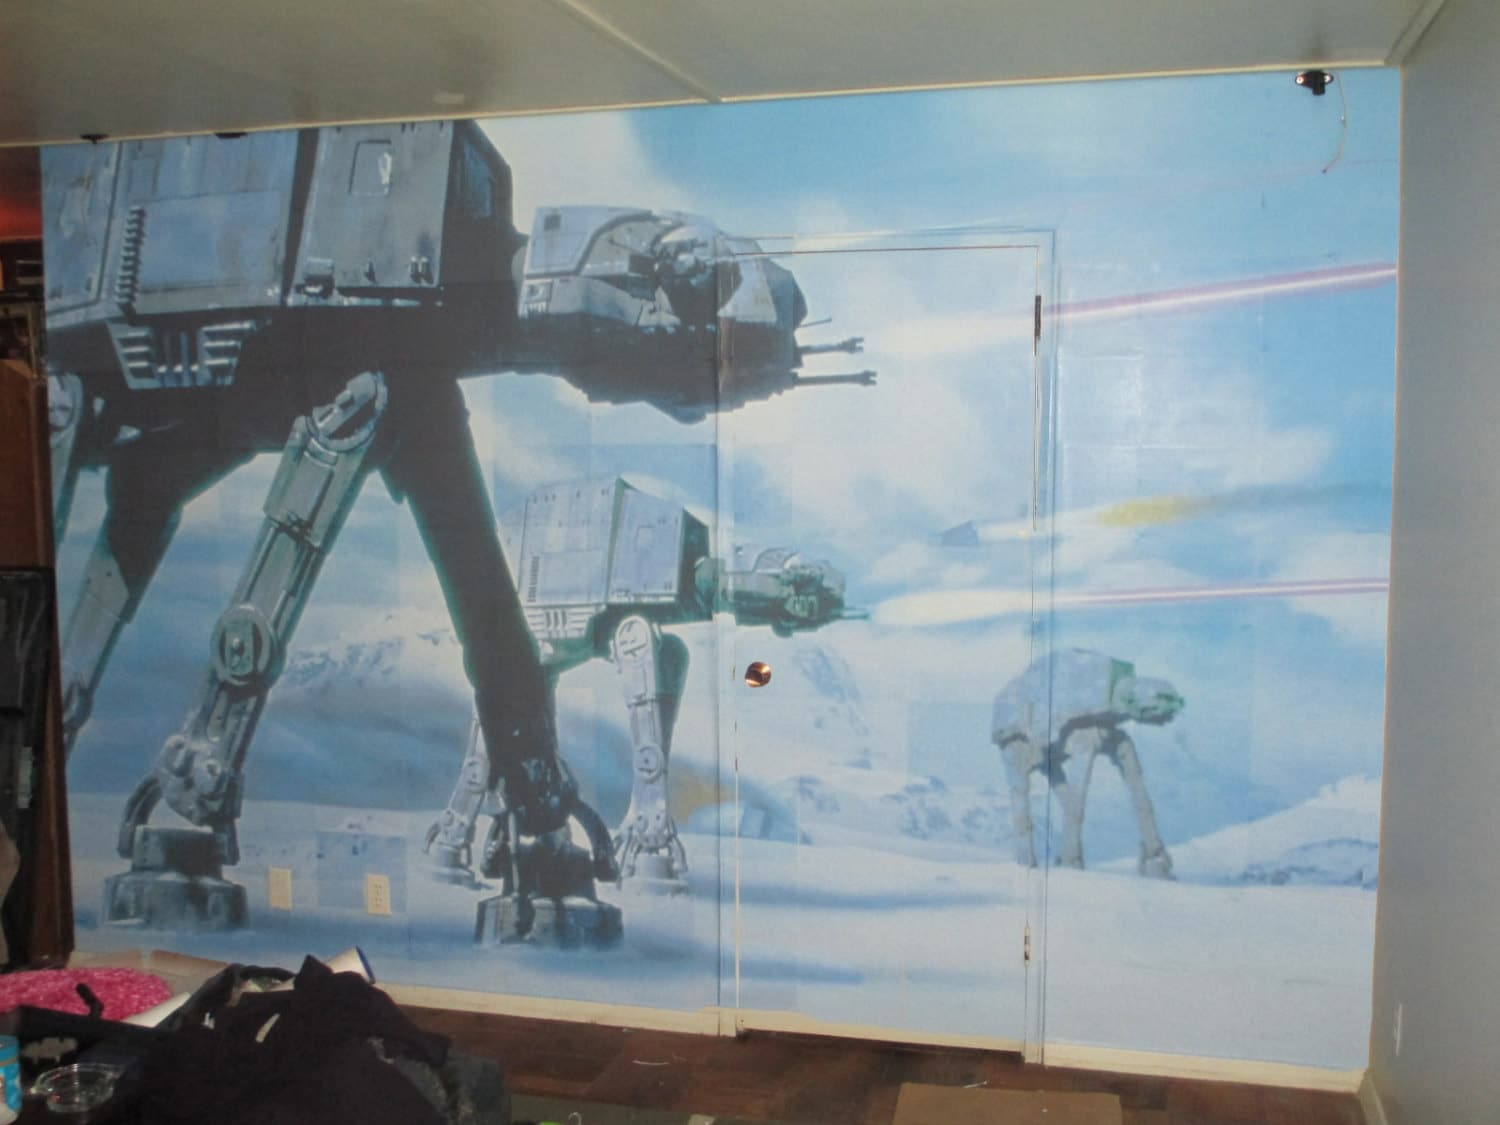 Star Wars Empire Strikes Back Imperial Walker Giant Photo